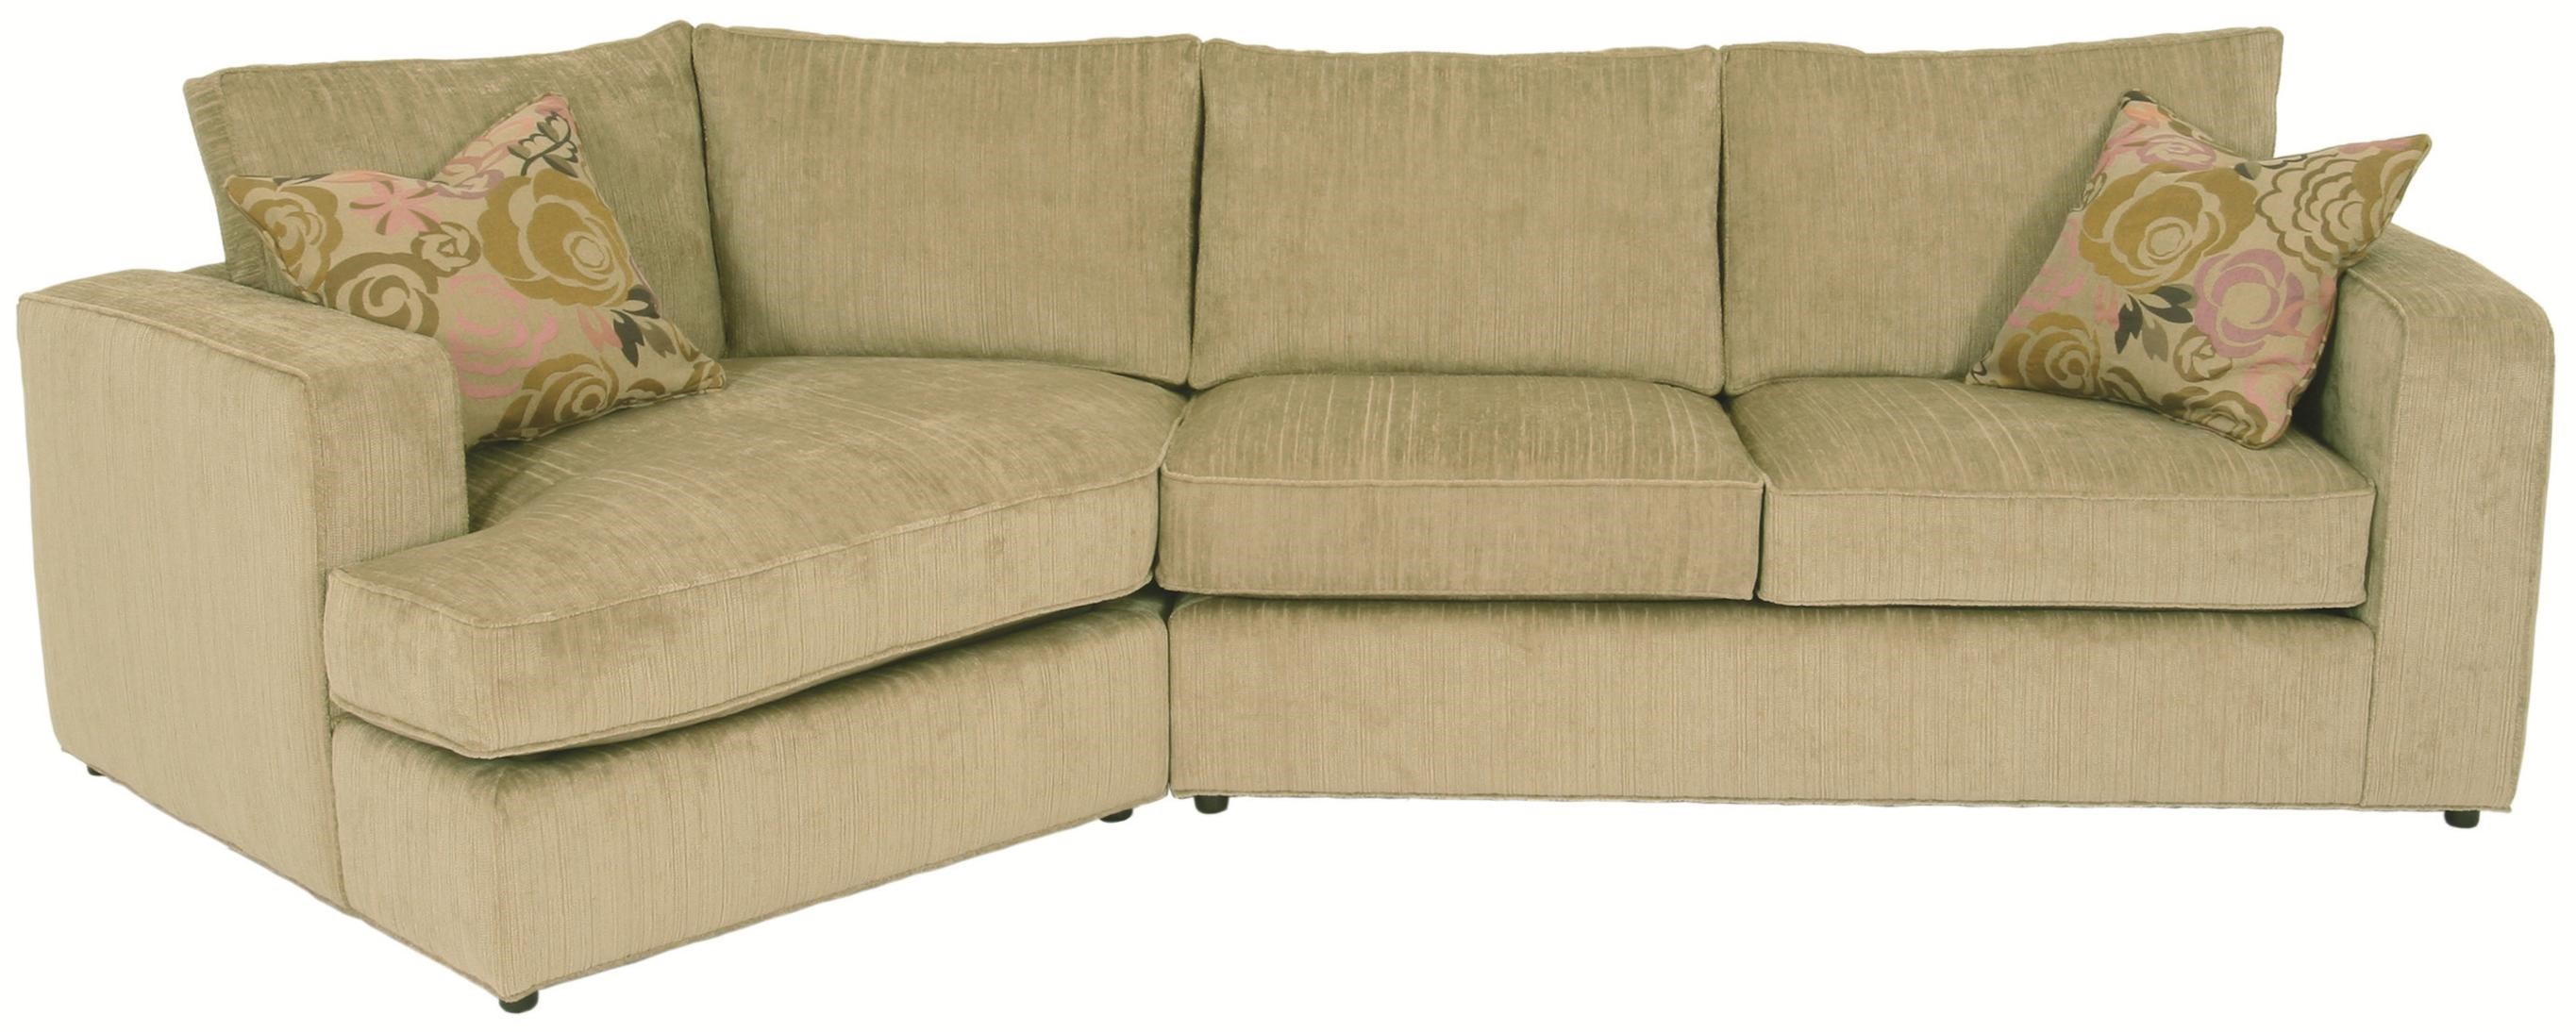 Milford Sectional Sofa With Track Arms, Loose Back Cushions And Angled  Chaise By Norwalk